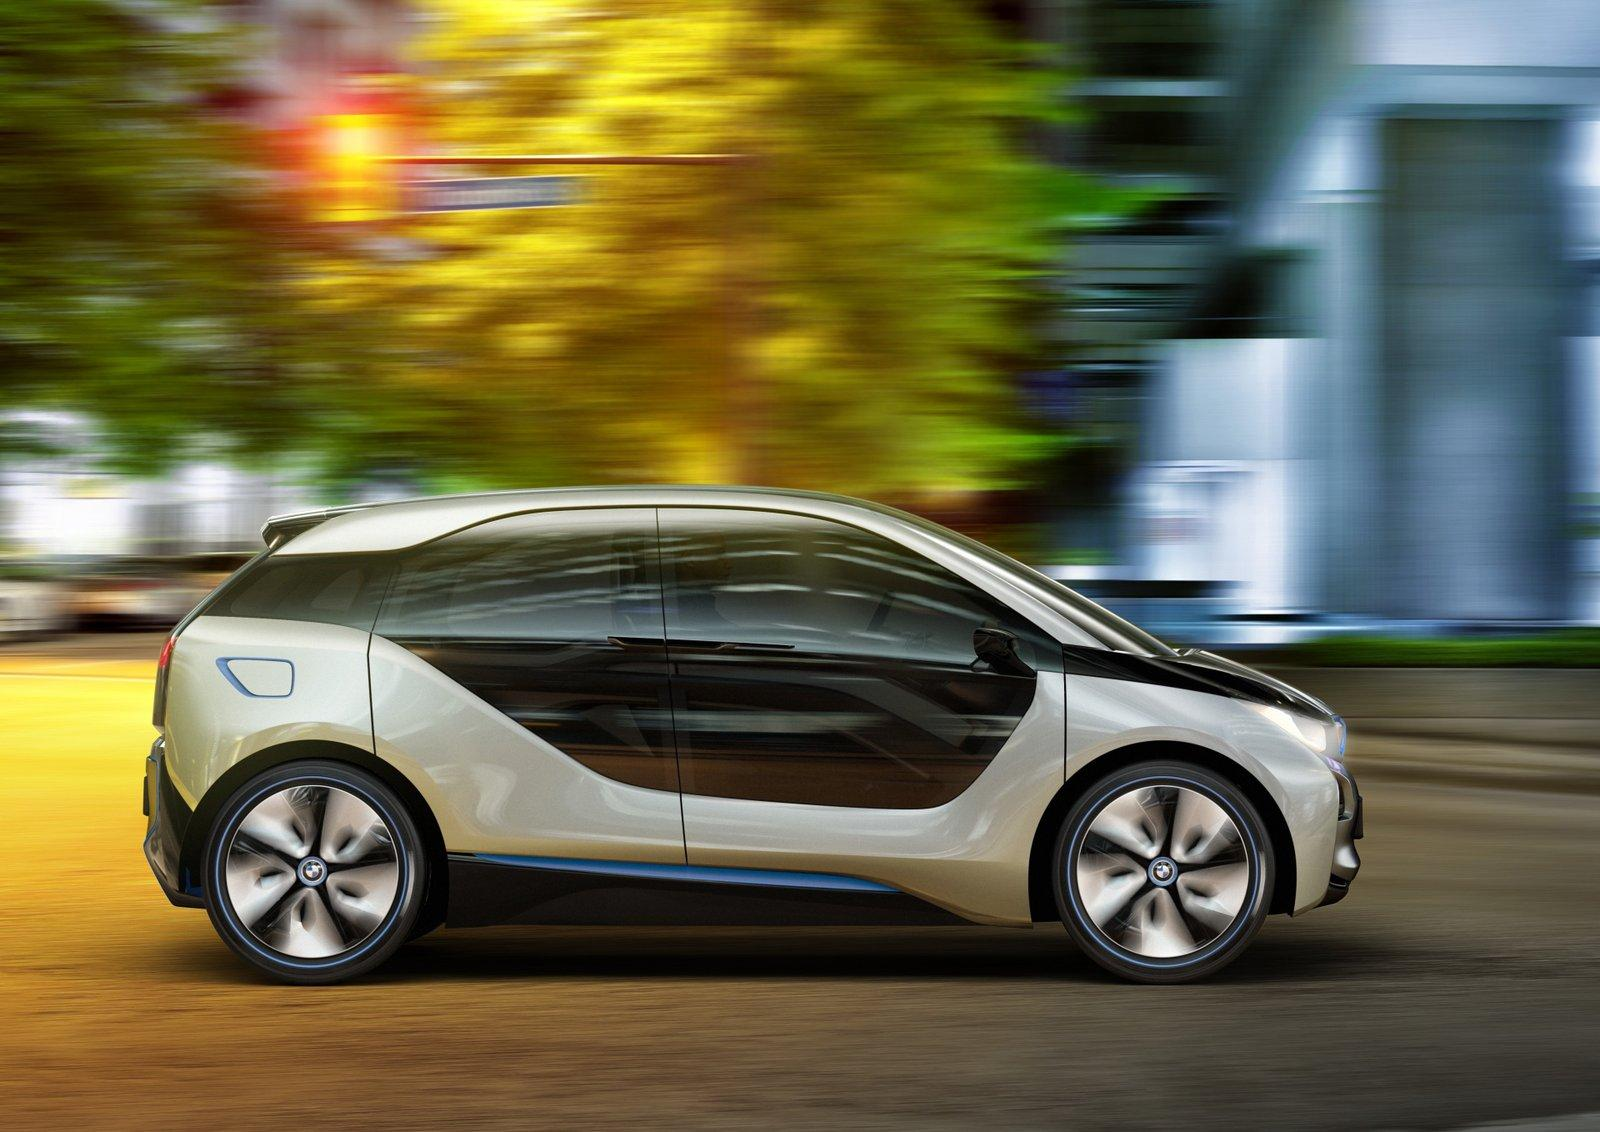 1600x1132 - BMW i3 Concept Wallpapers 18